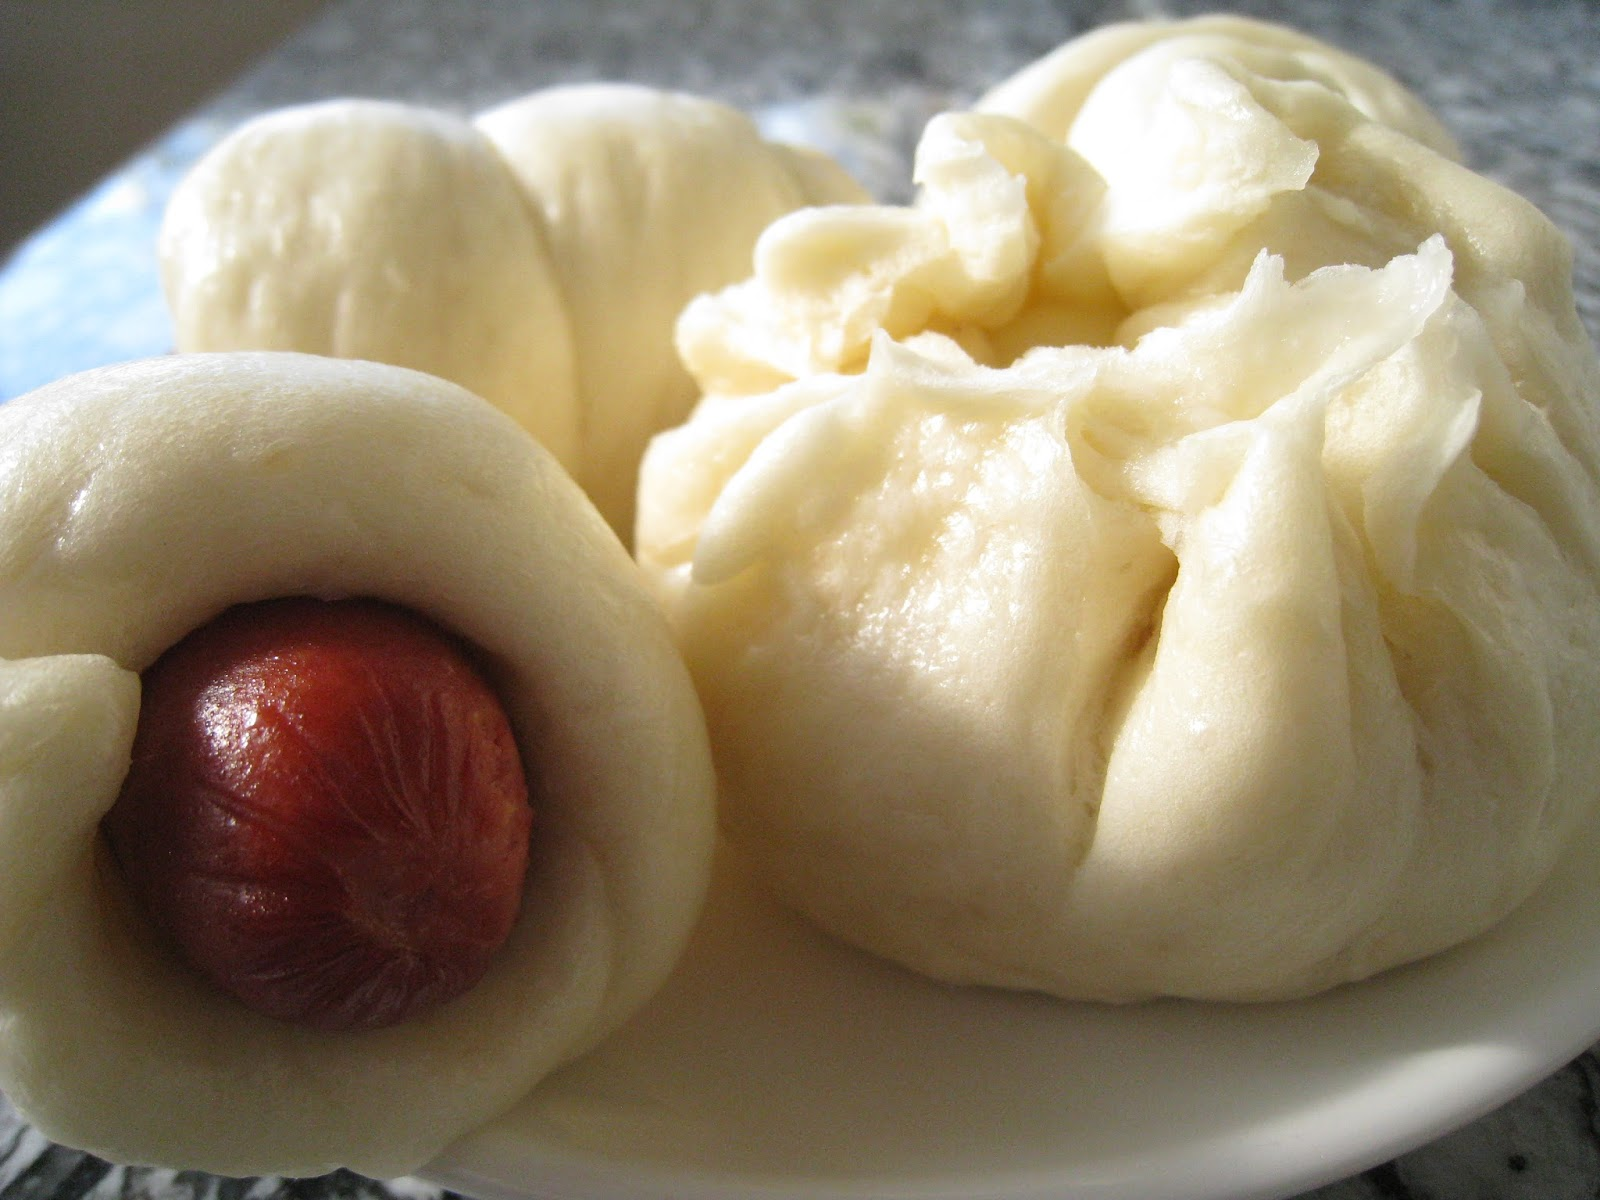 How To Steam Buns For Hot Dogs